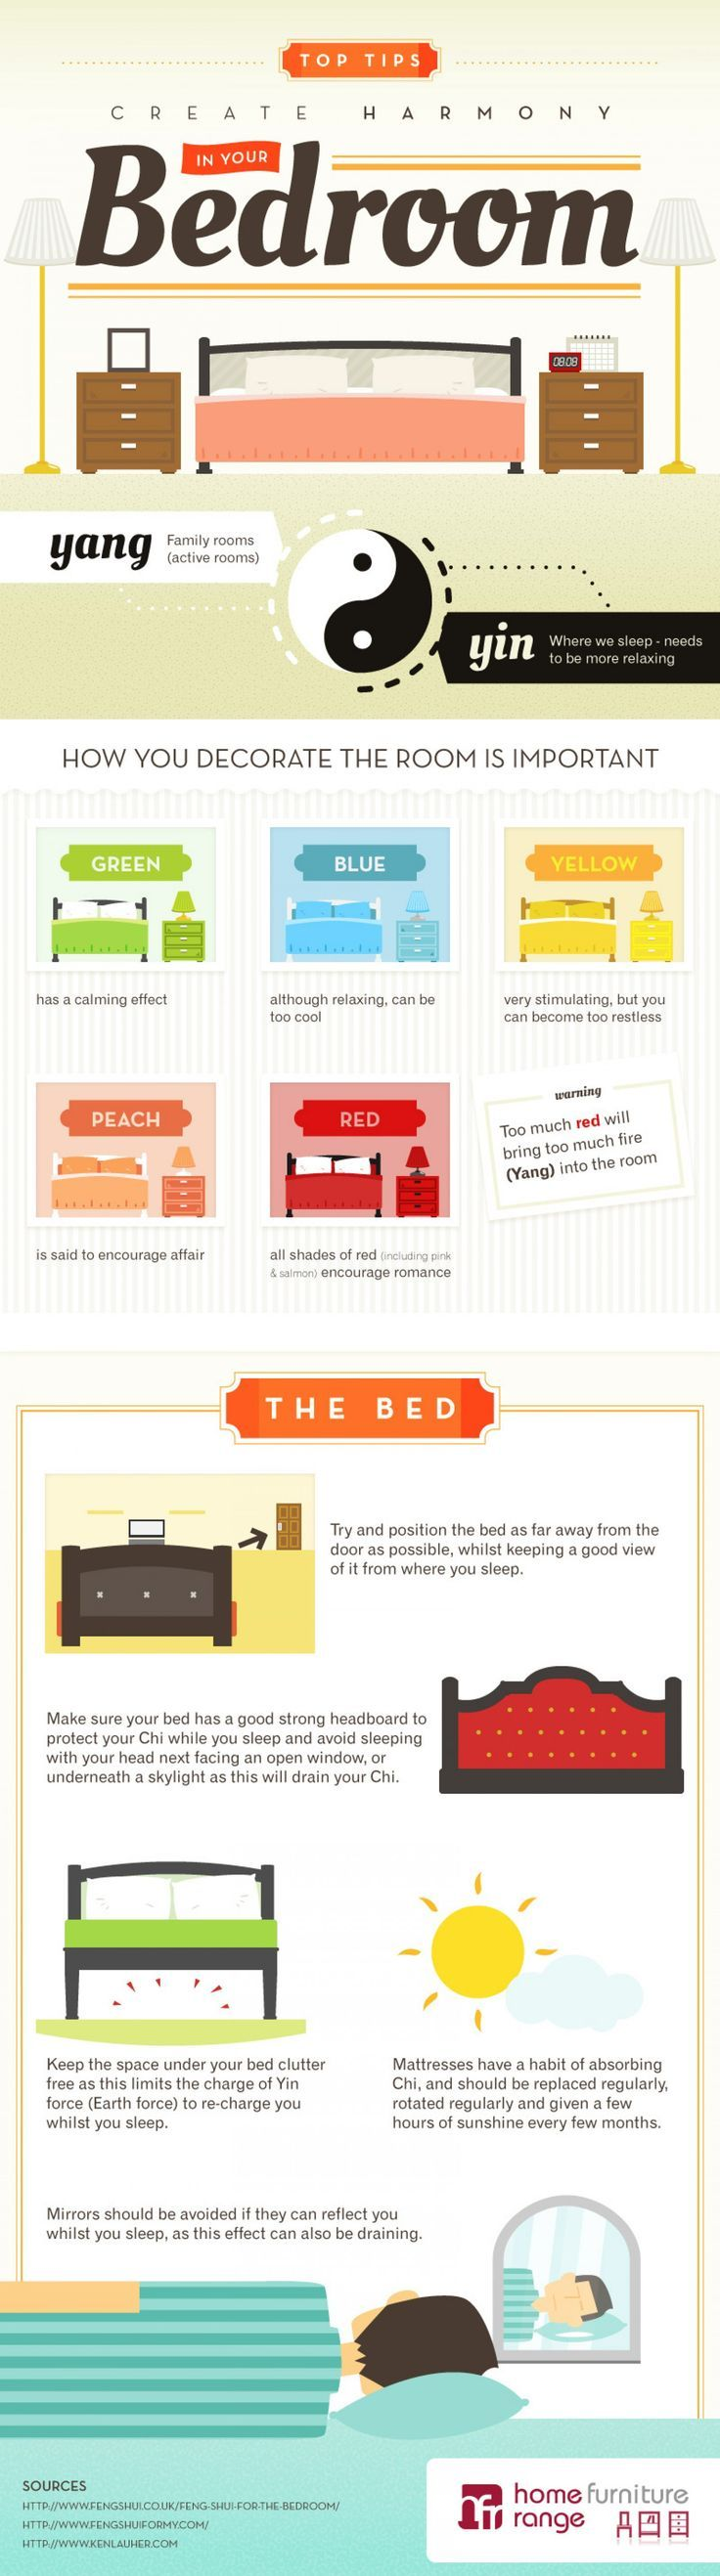 1000 Images About Love Relationships And Feng Shui Bedrooms On